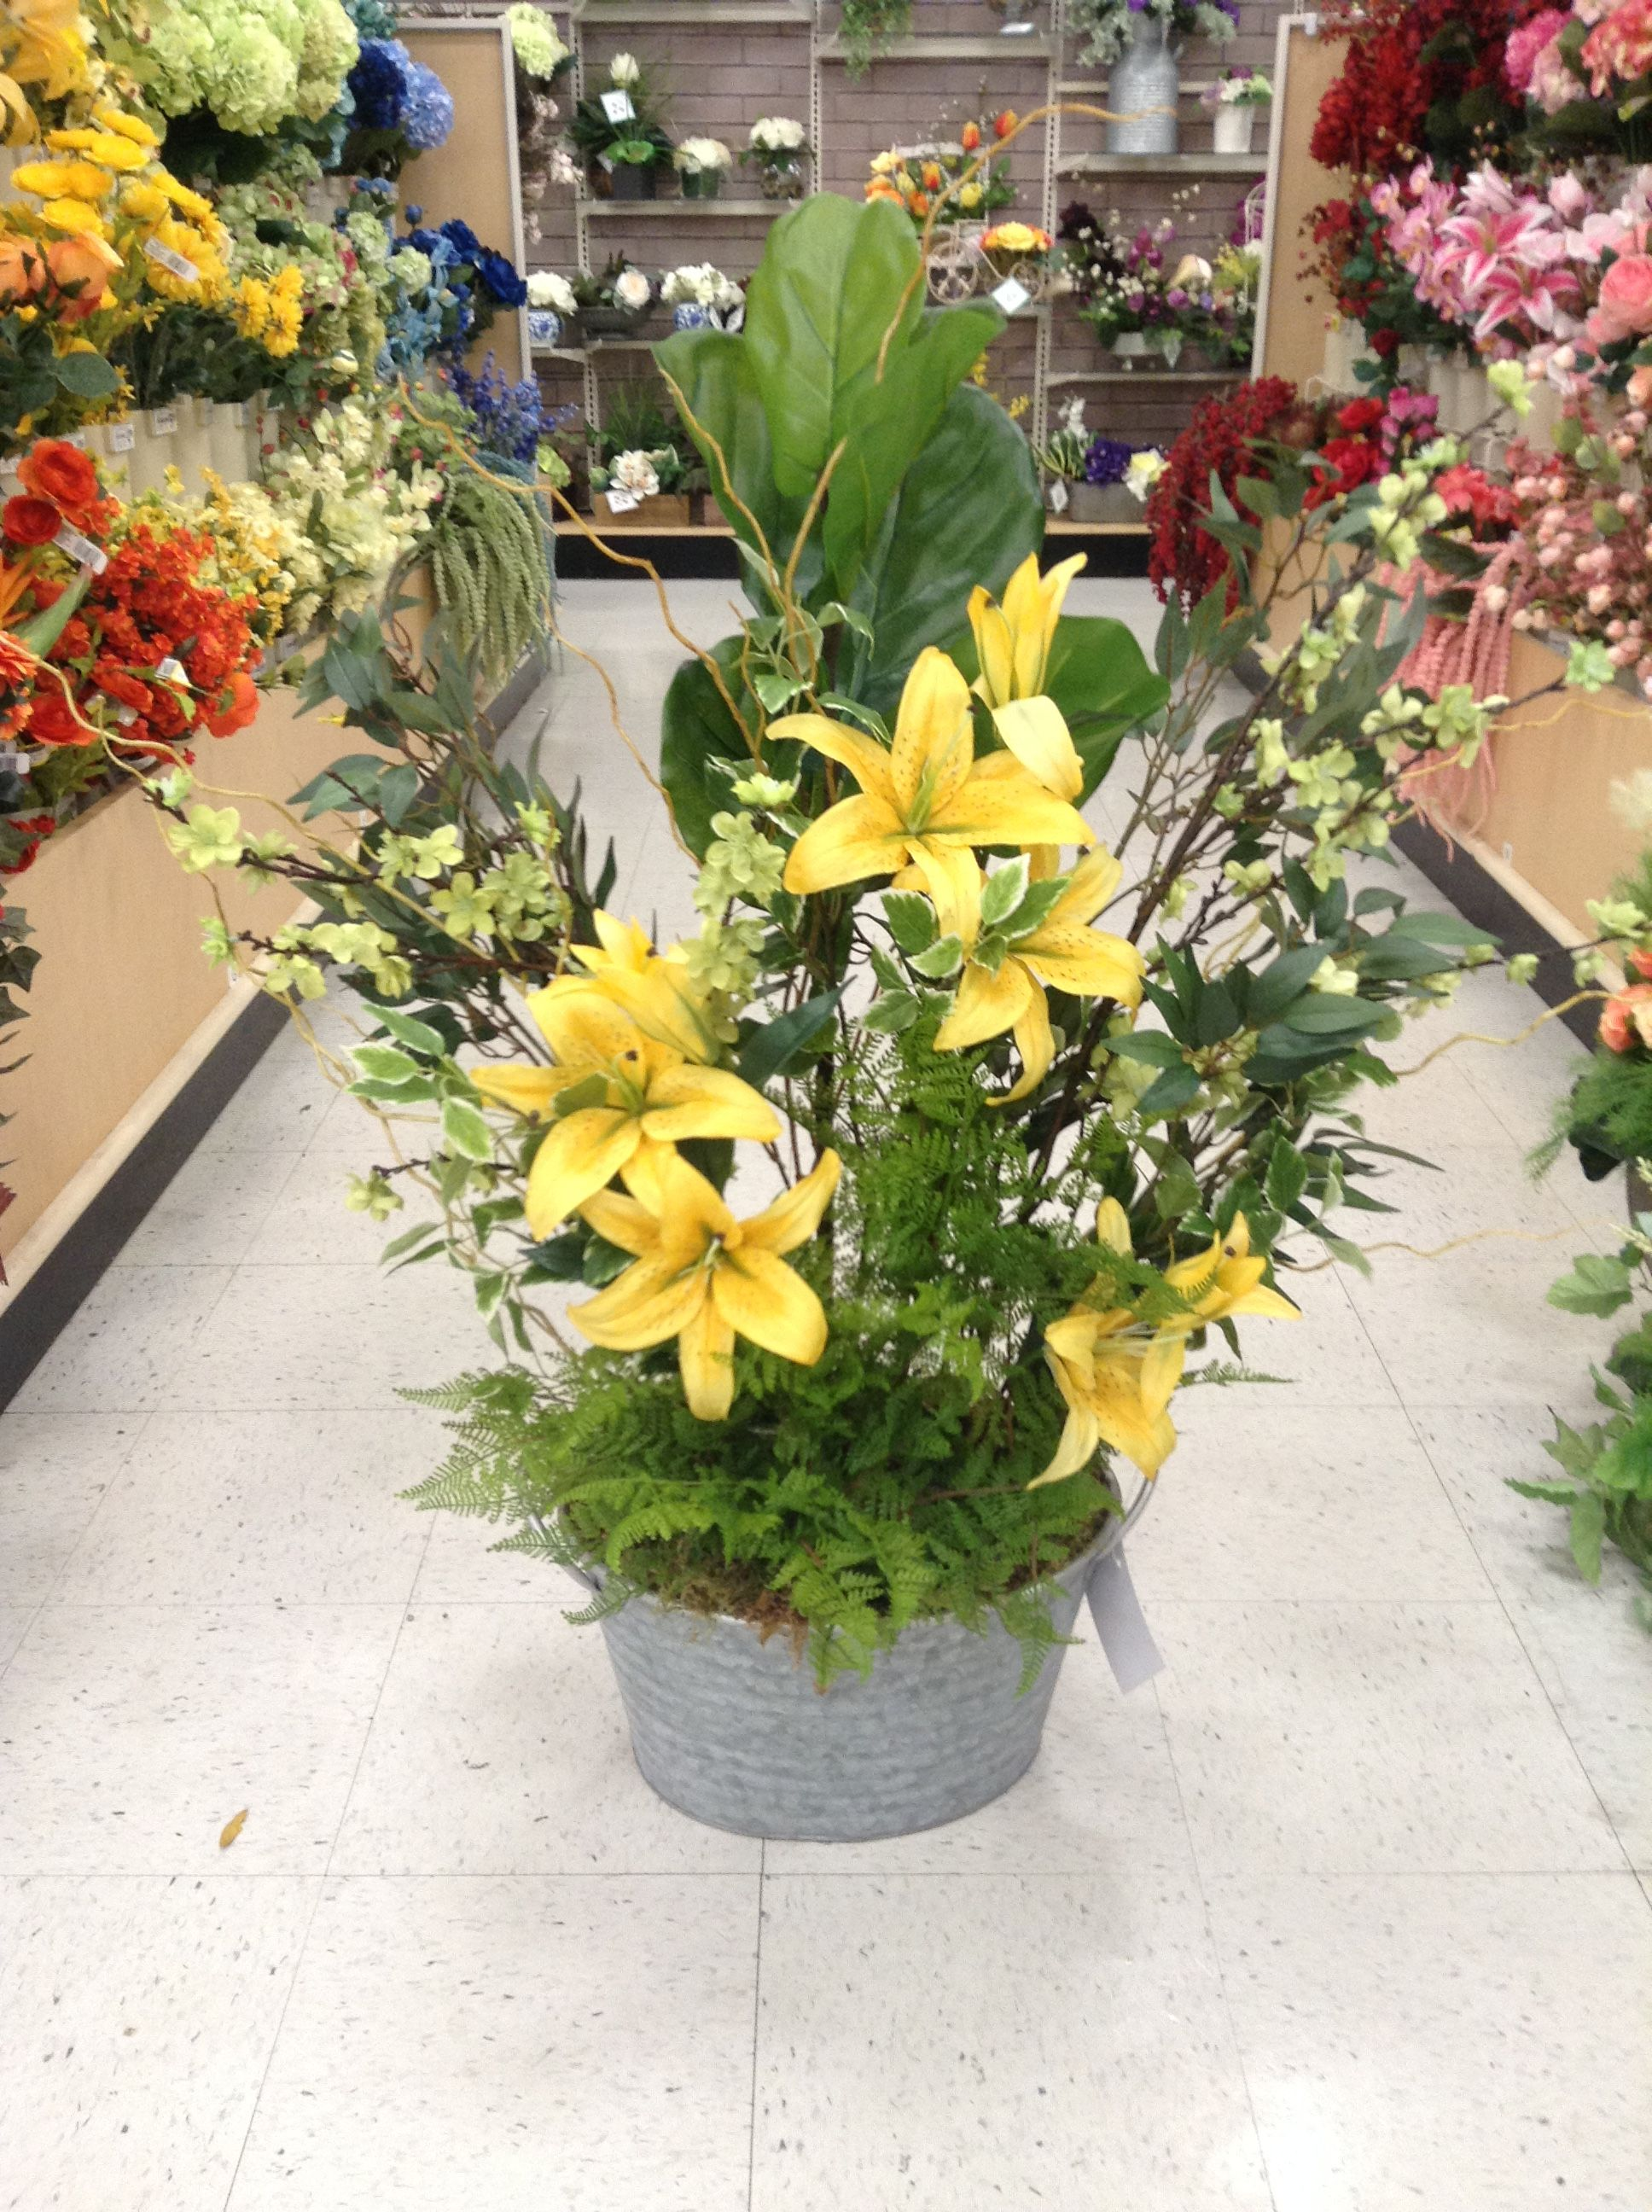 Big Floral Arrangement Of Yellow Lilies And Greenery In Galvanized Bucket Yellow Lily Floral Arrangements Arrangement